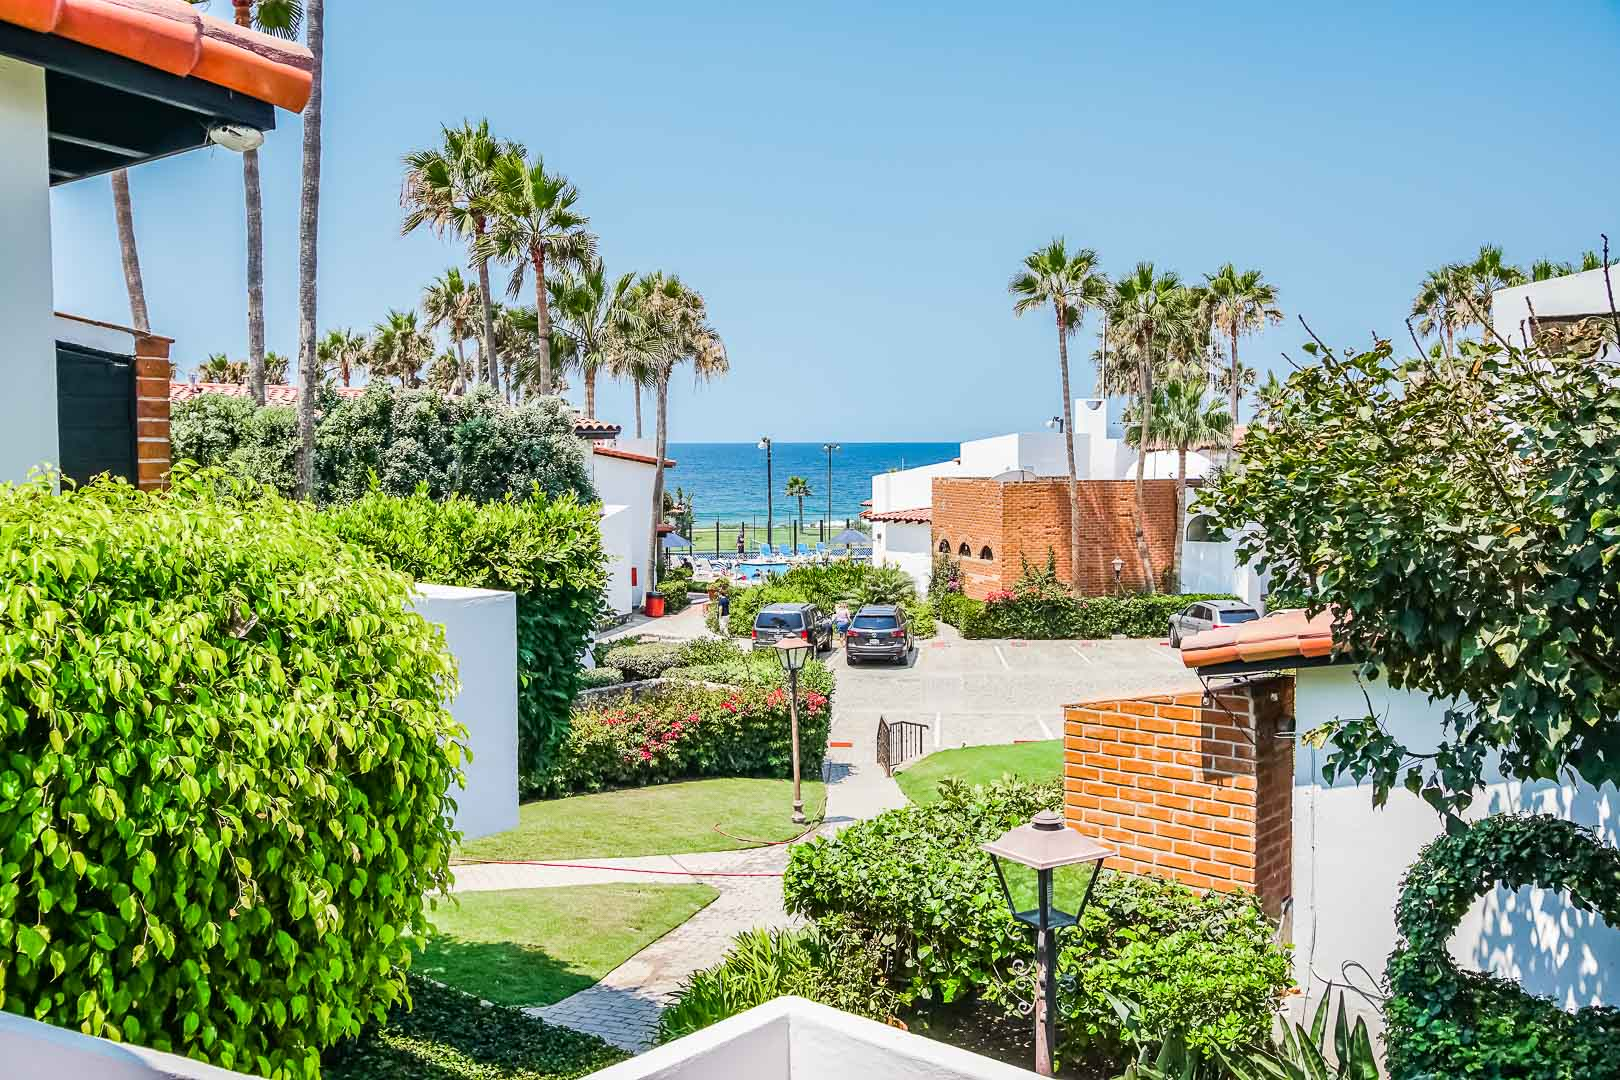 An outside view from the condominiums at VRI's La Paloma in Rosarito, Mexico.